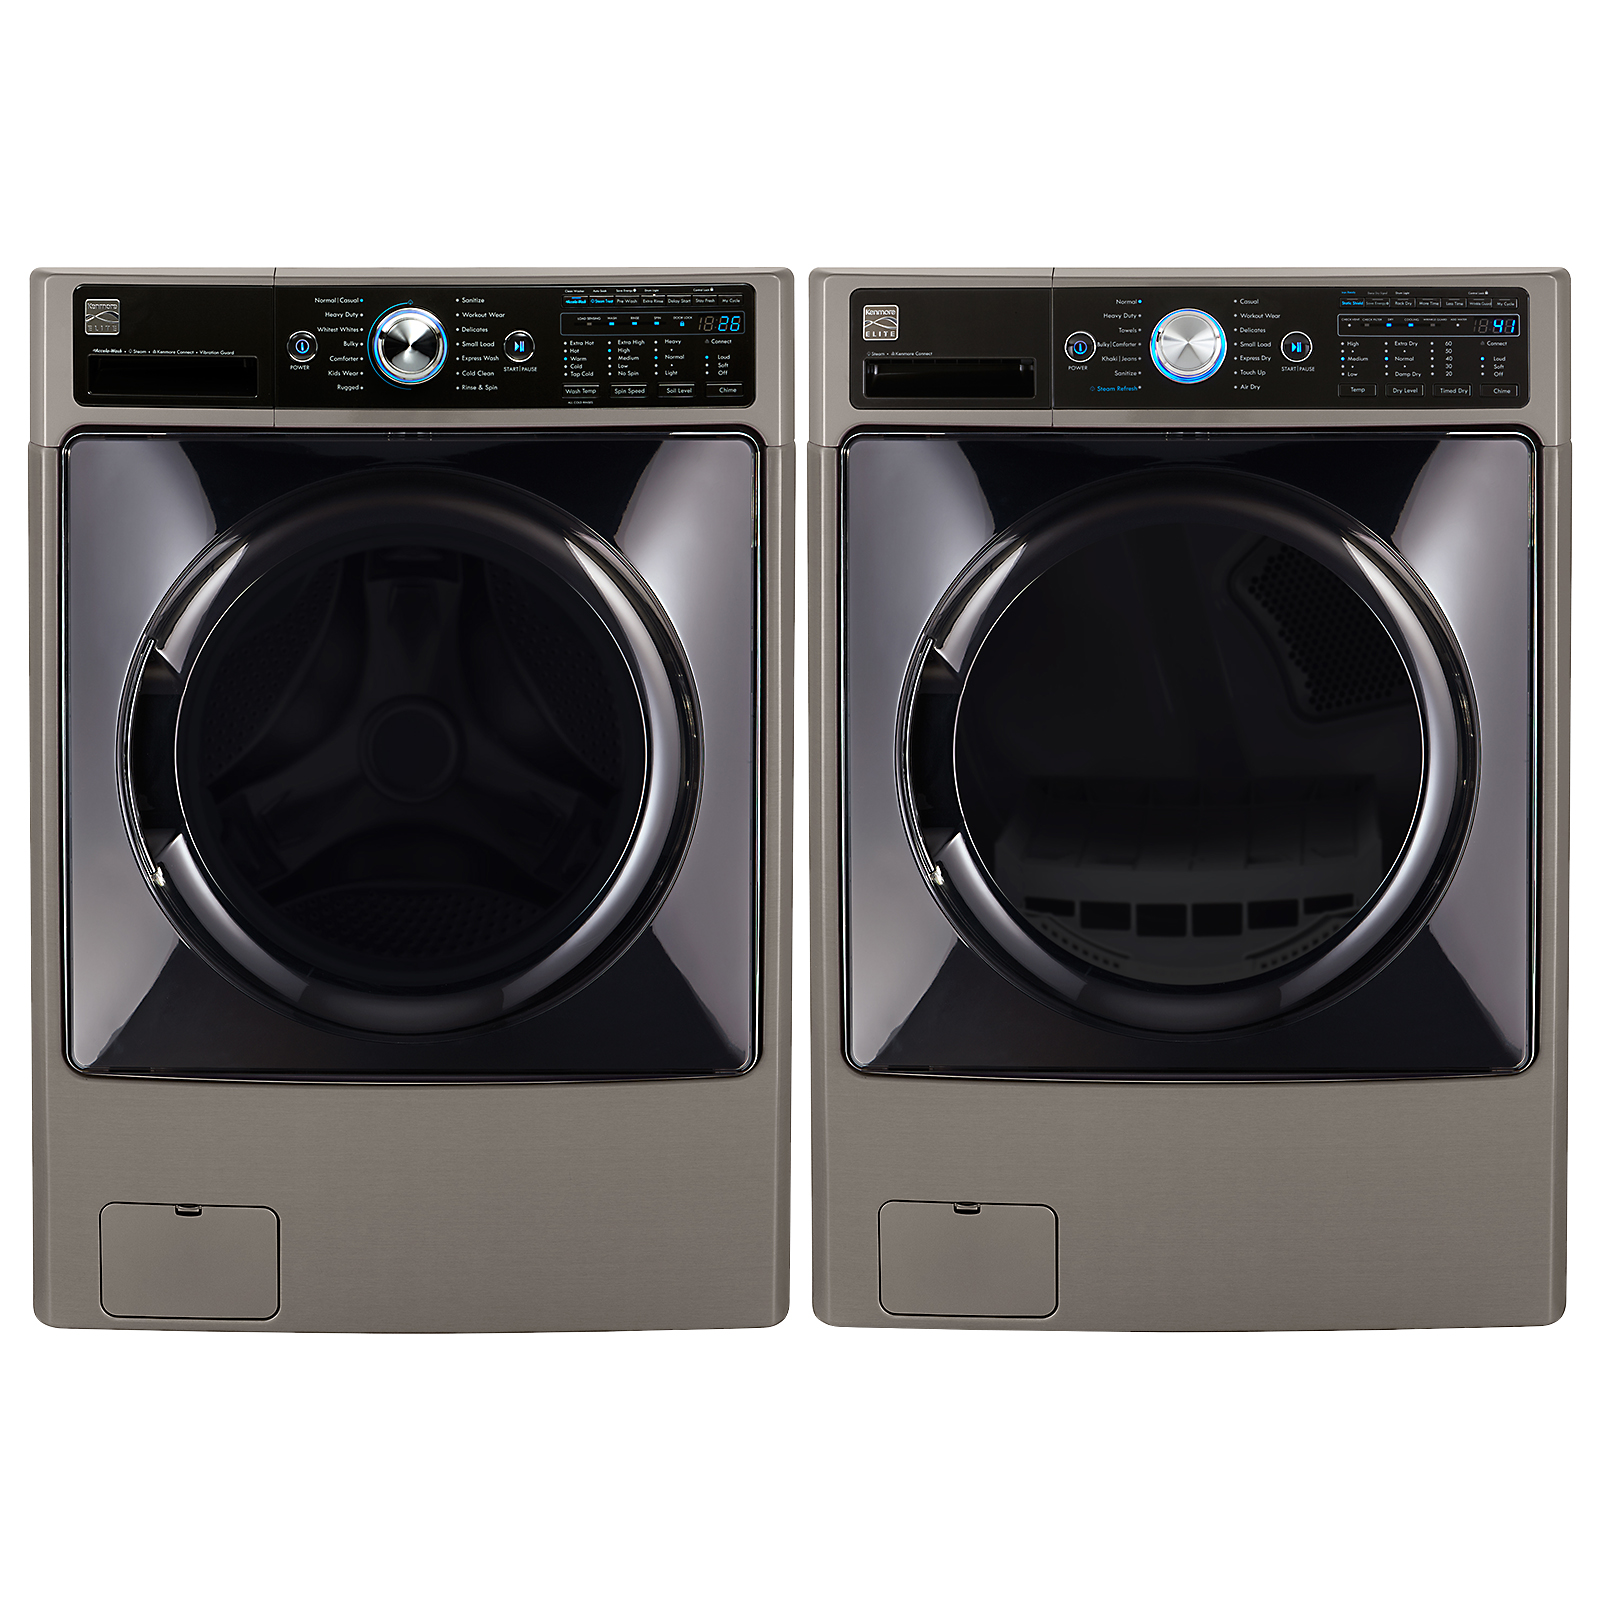 4.5 cu. ft. Front-Load Washer & 7.4 cu. ft. Dryer w/ Steam